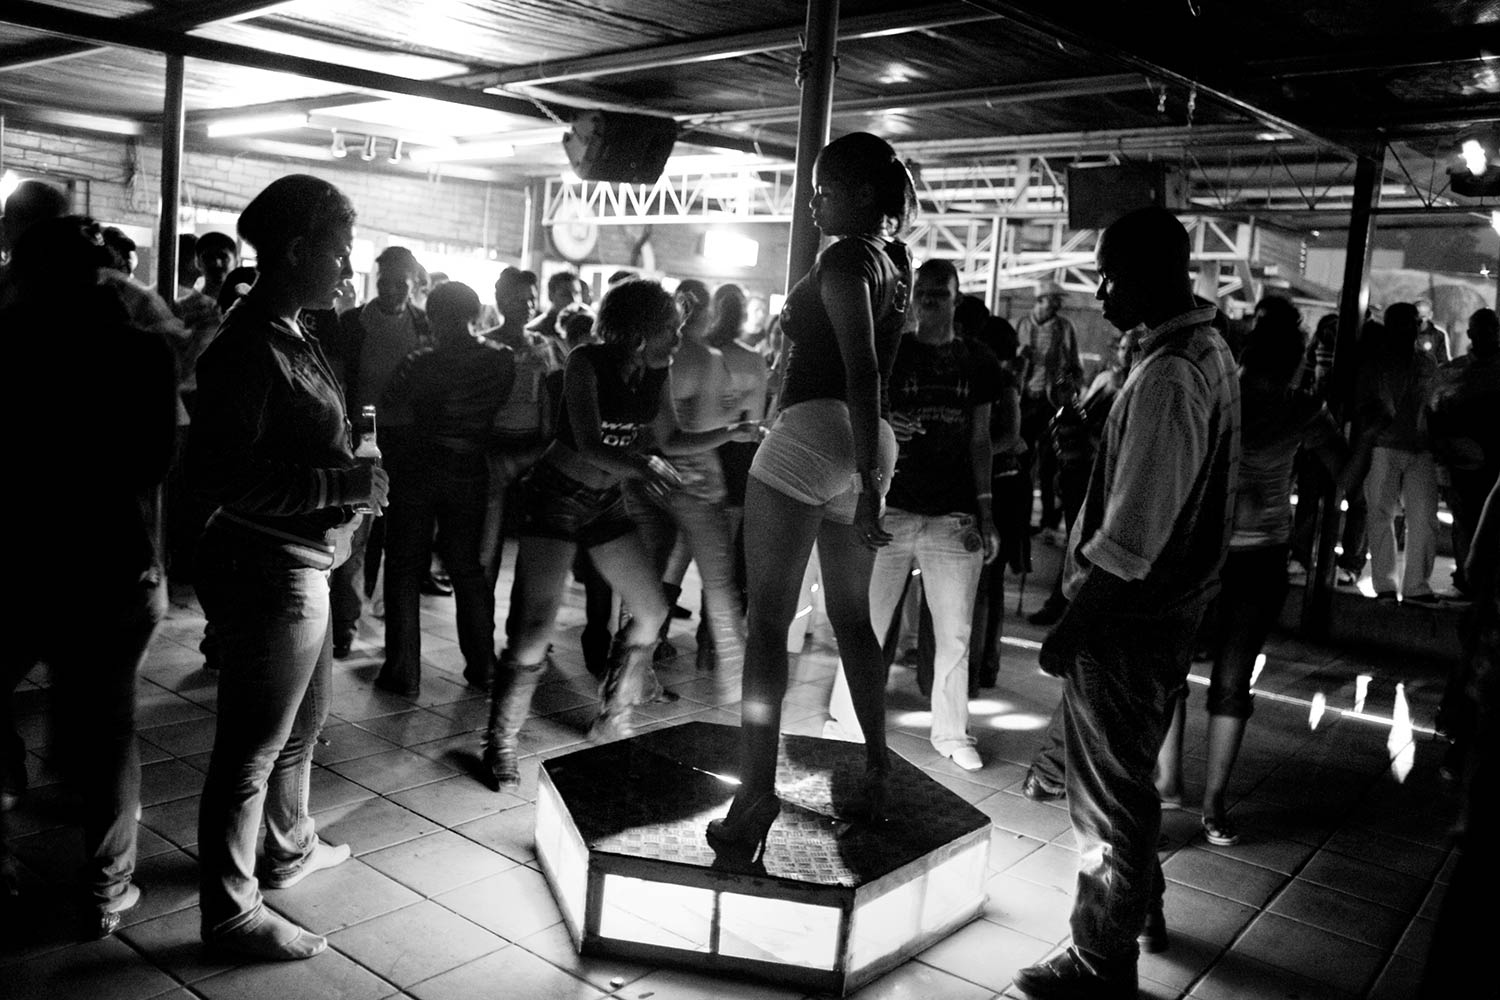 Young Swazi women and men party at a local nightclub in Manzini, Swaziland. Life expectancy in Swaziland has dropped from 61 to almost 31 over the past 10 years.